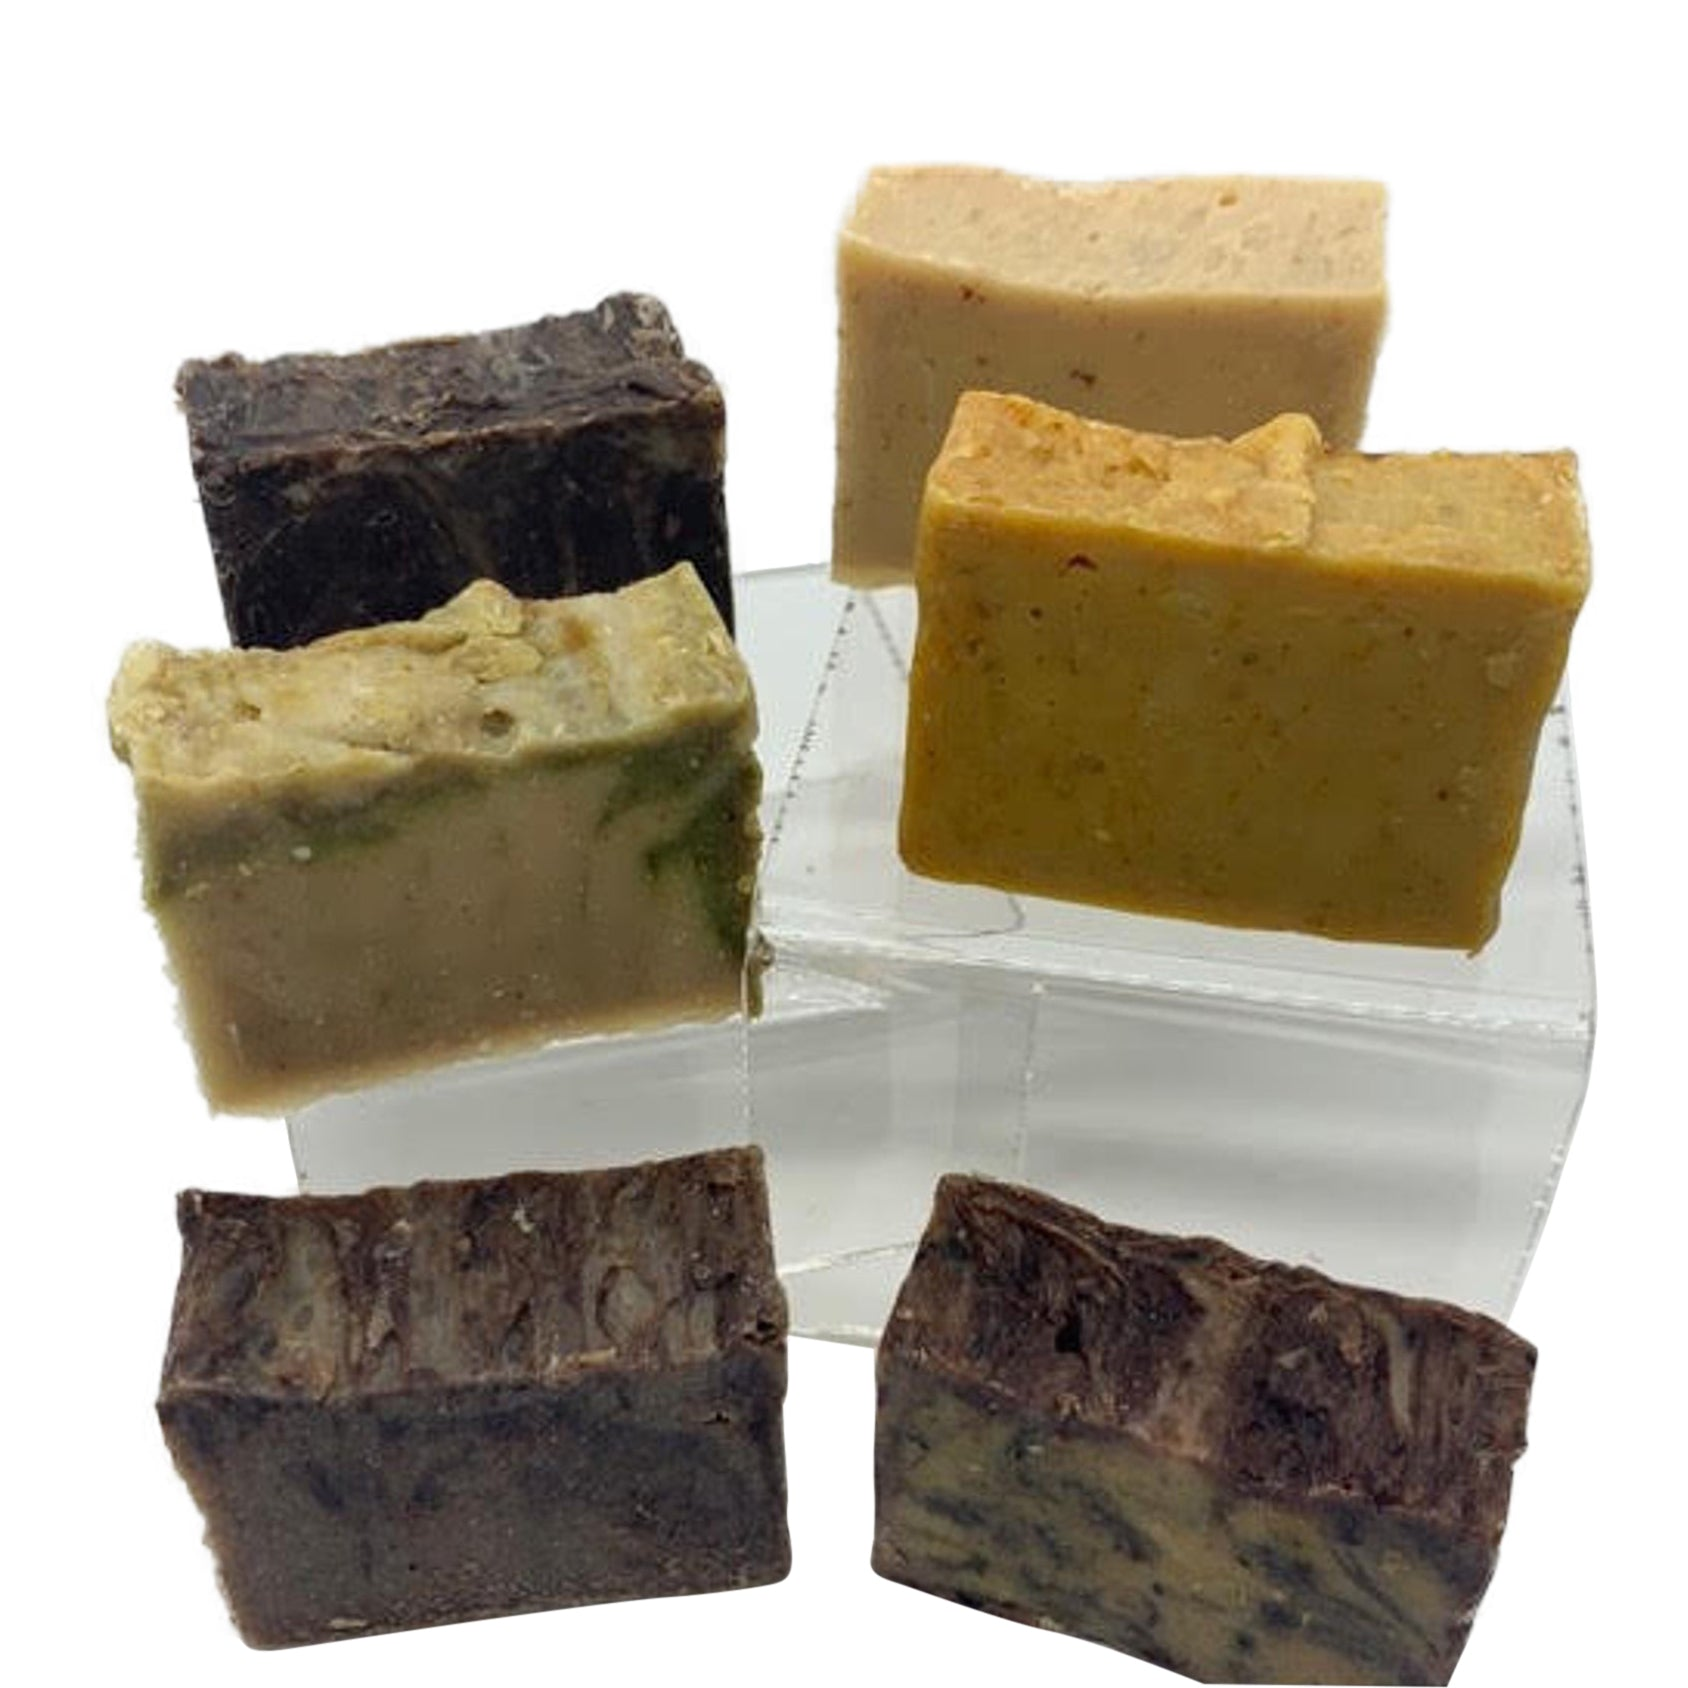 Soap Sample Set (6) 2 oz Bars! All Soaps Made with Fermented Rice Water, Goat Milk, Honey, Oatmeal, MSM, Magnesium & Zinc. Helps with Acne! See Before and After Pictures!